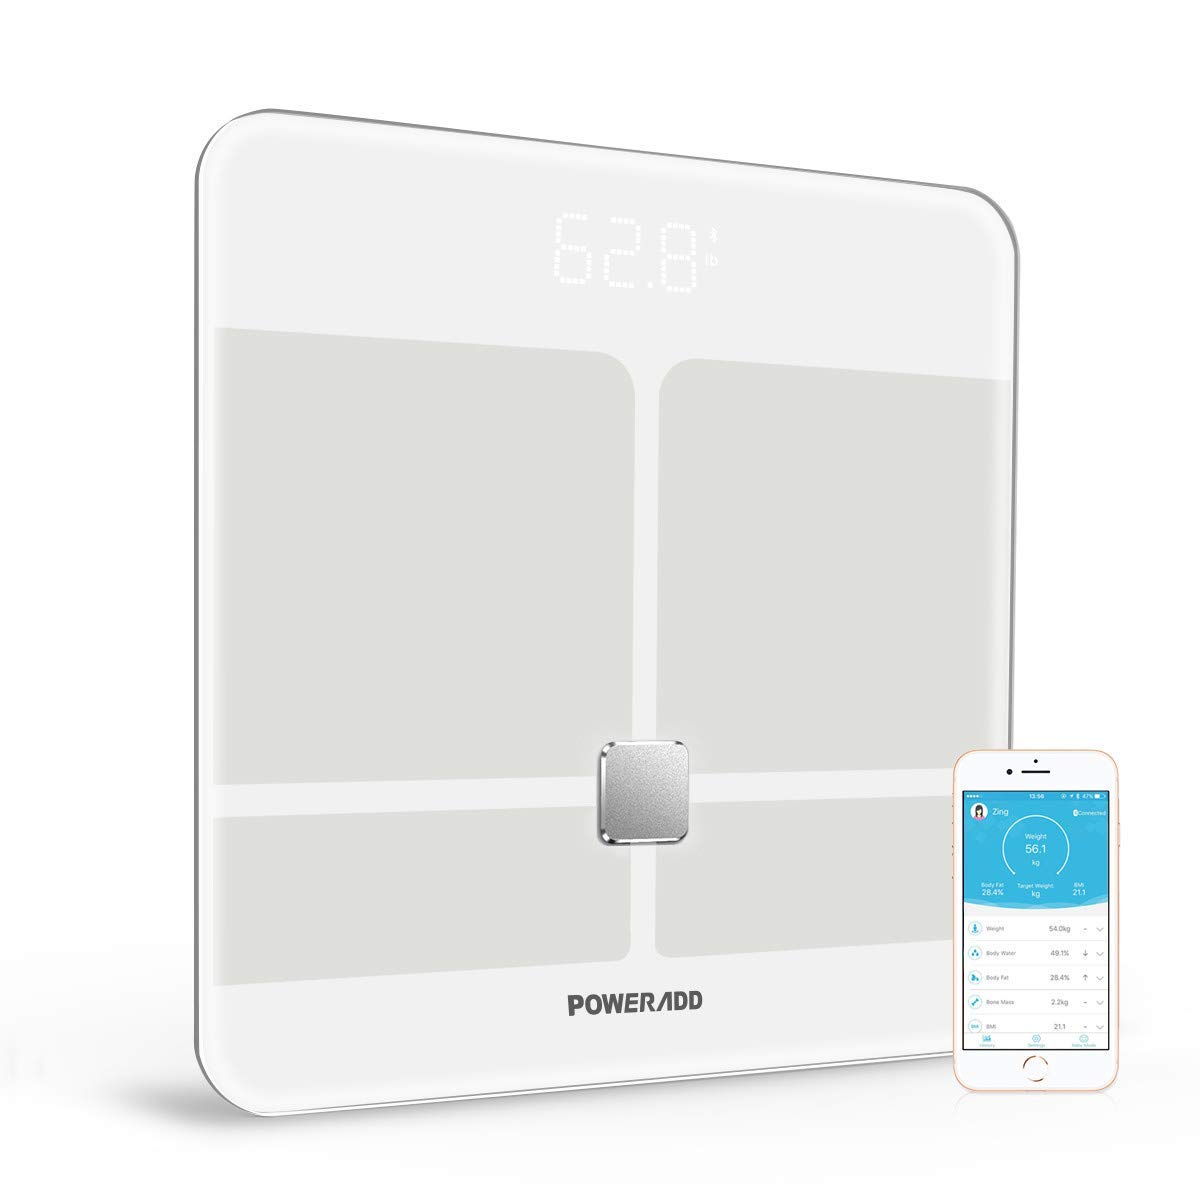 POWERADD Digitale Personenwaagen Bluetooth waage, 5-180kg